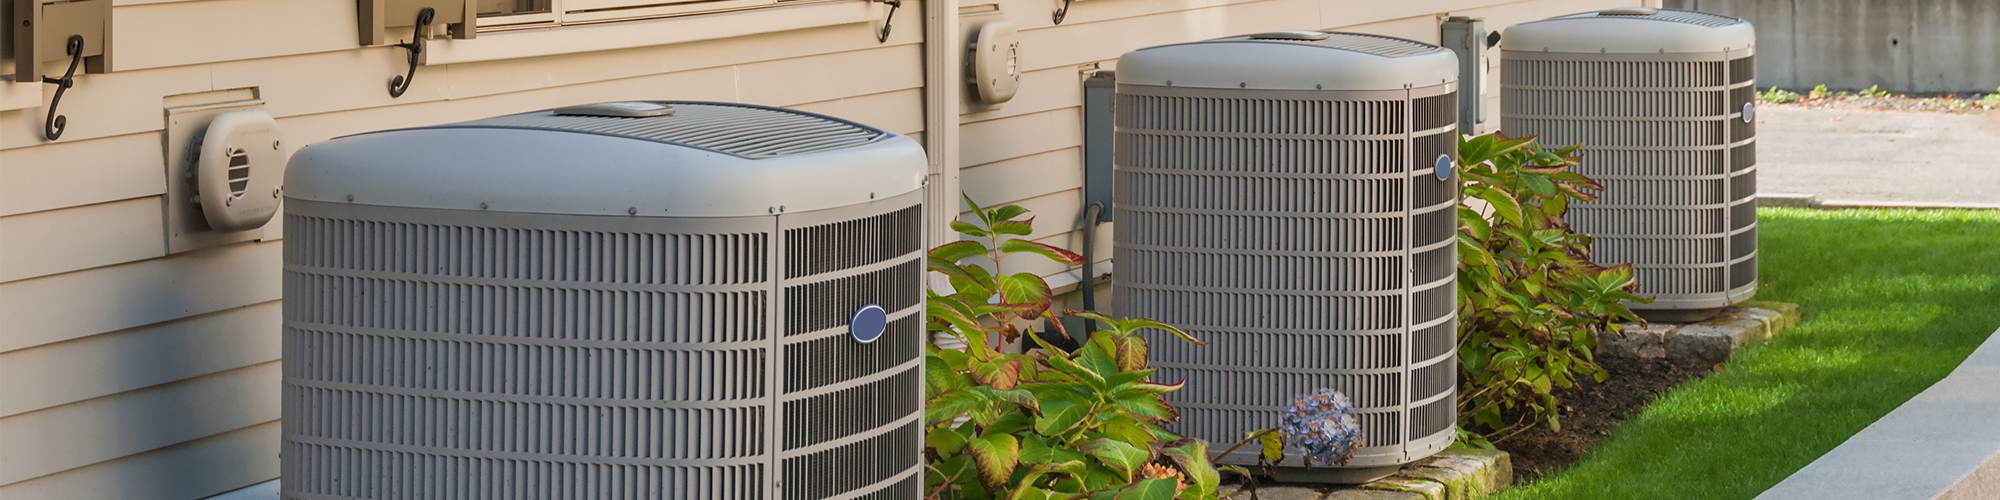 Heating and Cooling Systems - Harvest, AL